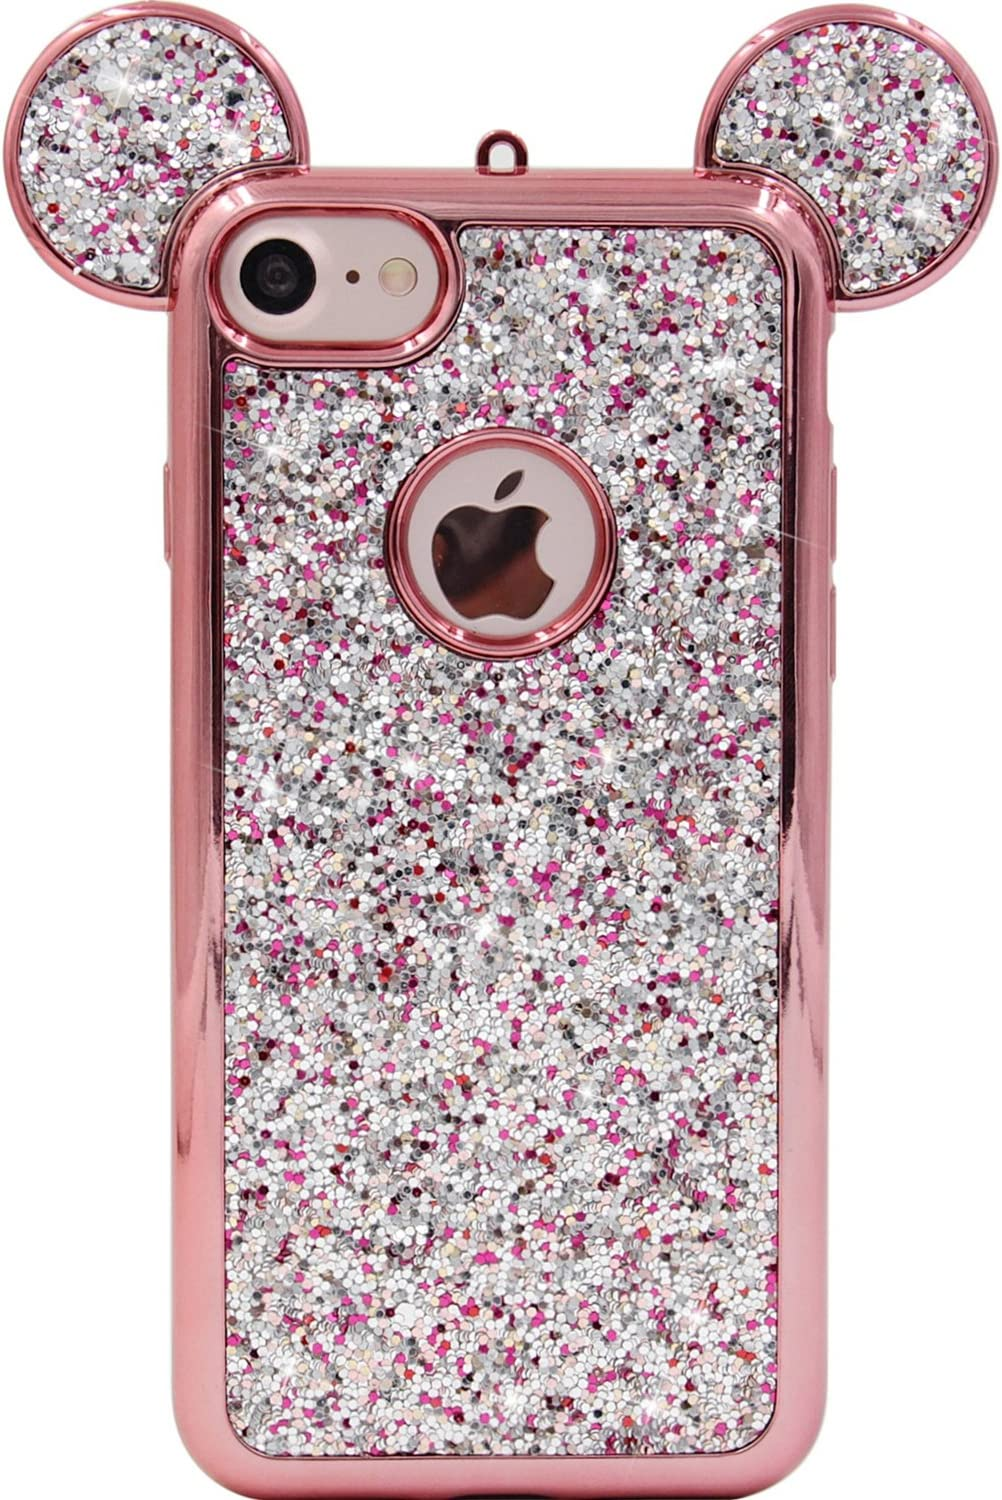 iPhone 8 Case, iPhone 7 Case, MC Fashion Super Cute Sparkle Bling Bling Glitter 3D Mickey Mouse Ears Soft and Protective TPU Rubber Case for iPhone 7/8 (Rose Gold)